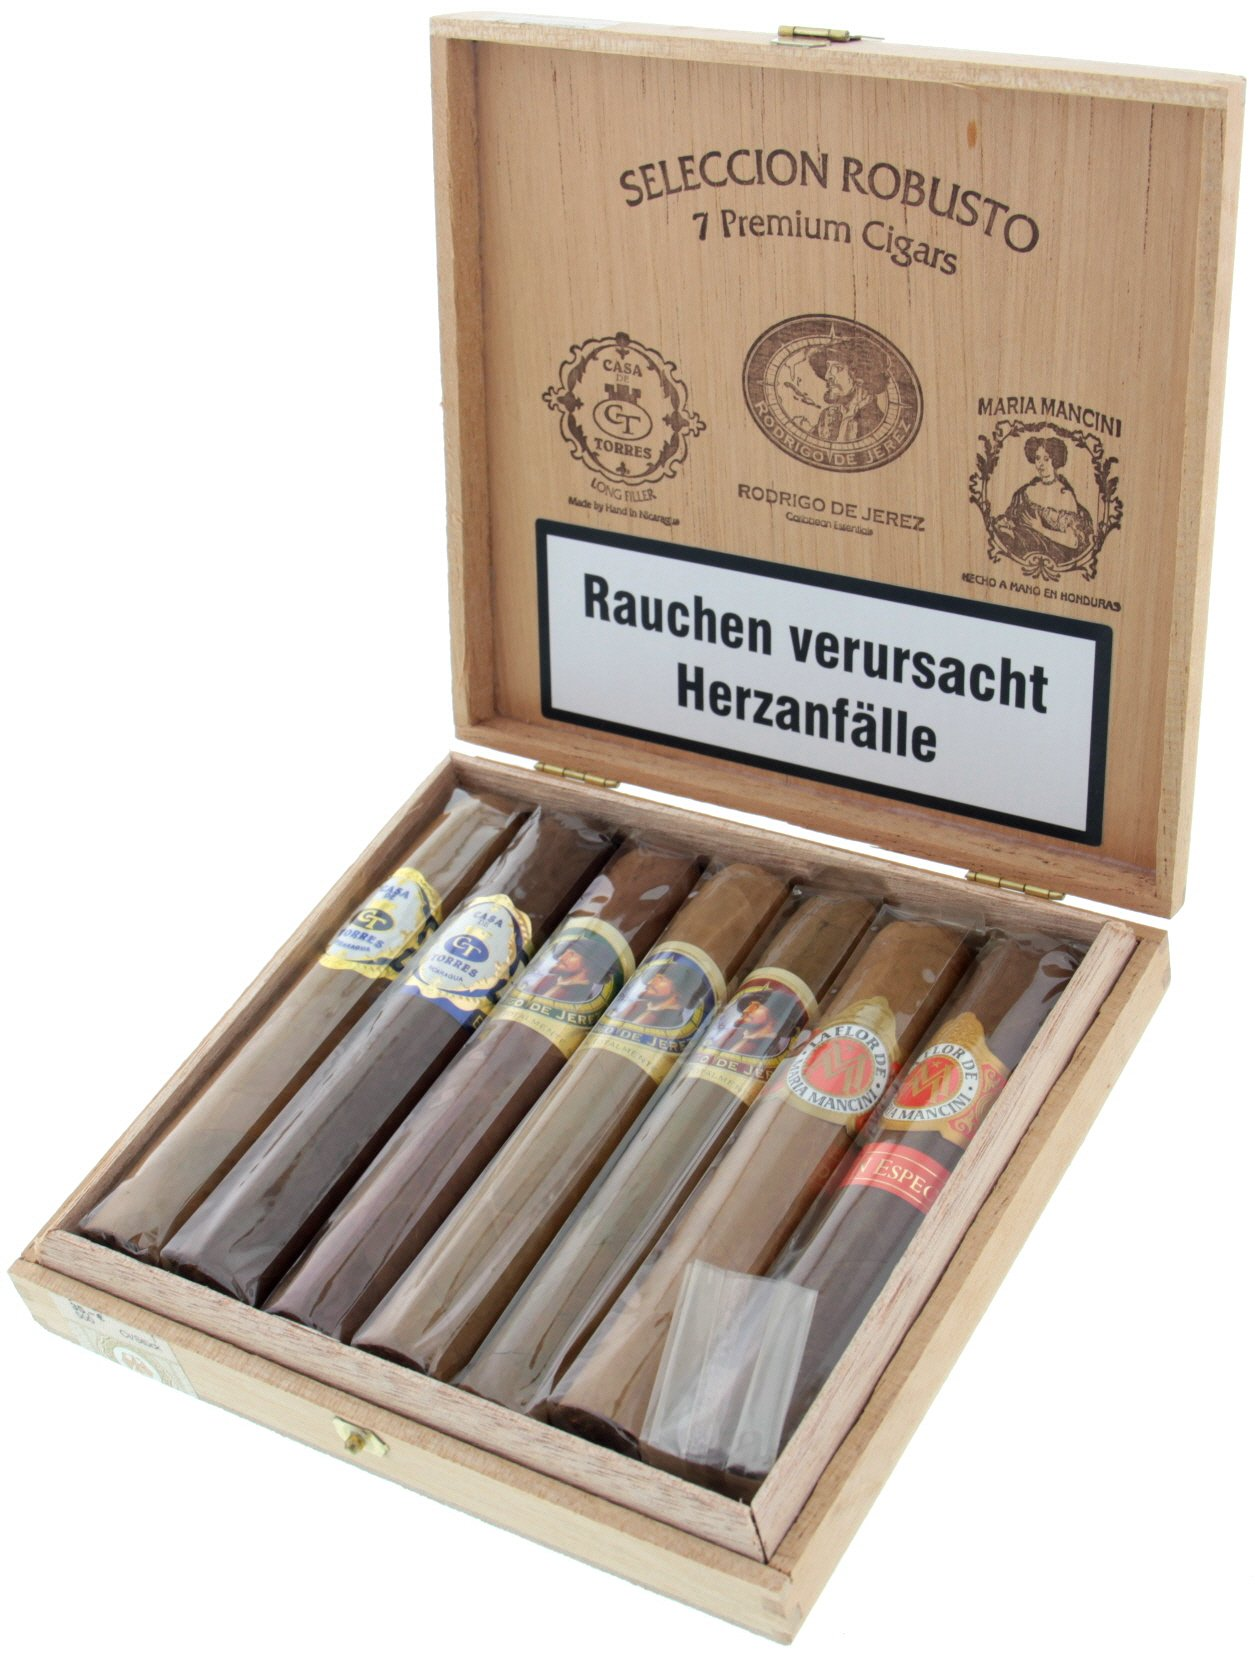 August Schuster Sampler Seleccion Robusto 7 Premium Cigars offen